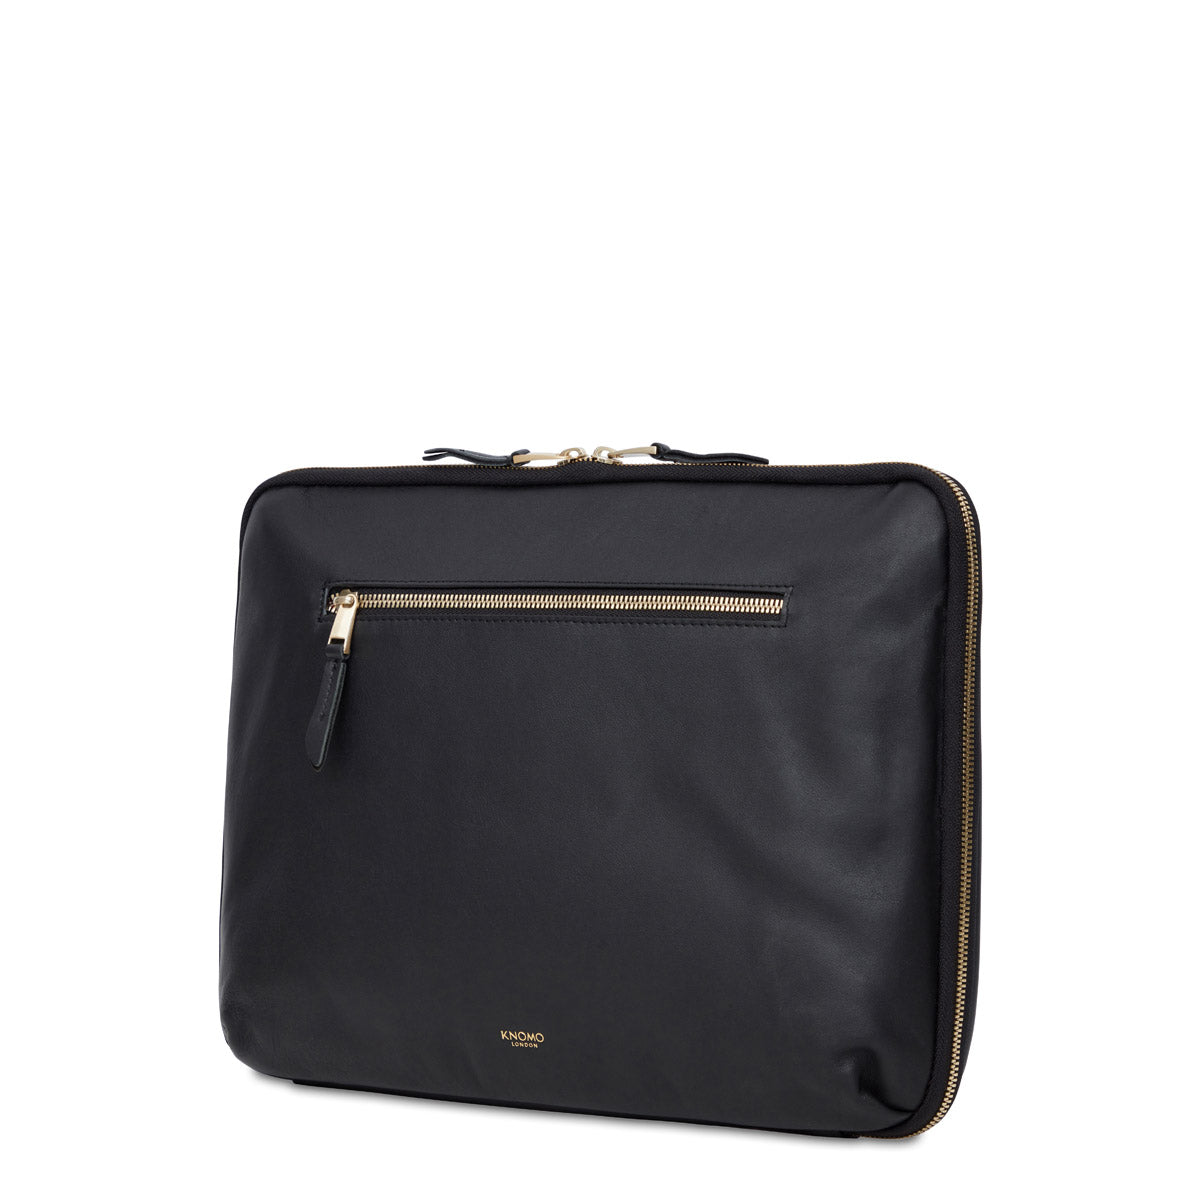 "Mayfair Luxe Knomad Organizer - 13"" Mayfair Luxe Knomad Organizer - 13"" -  Black 